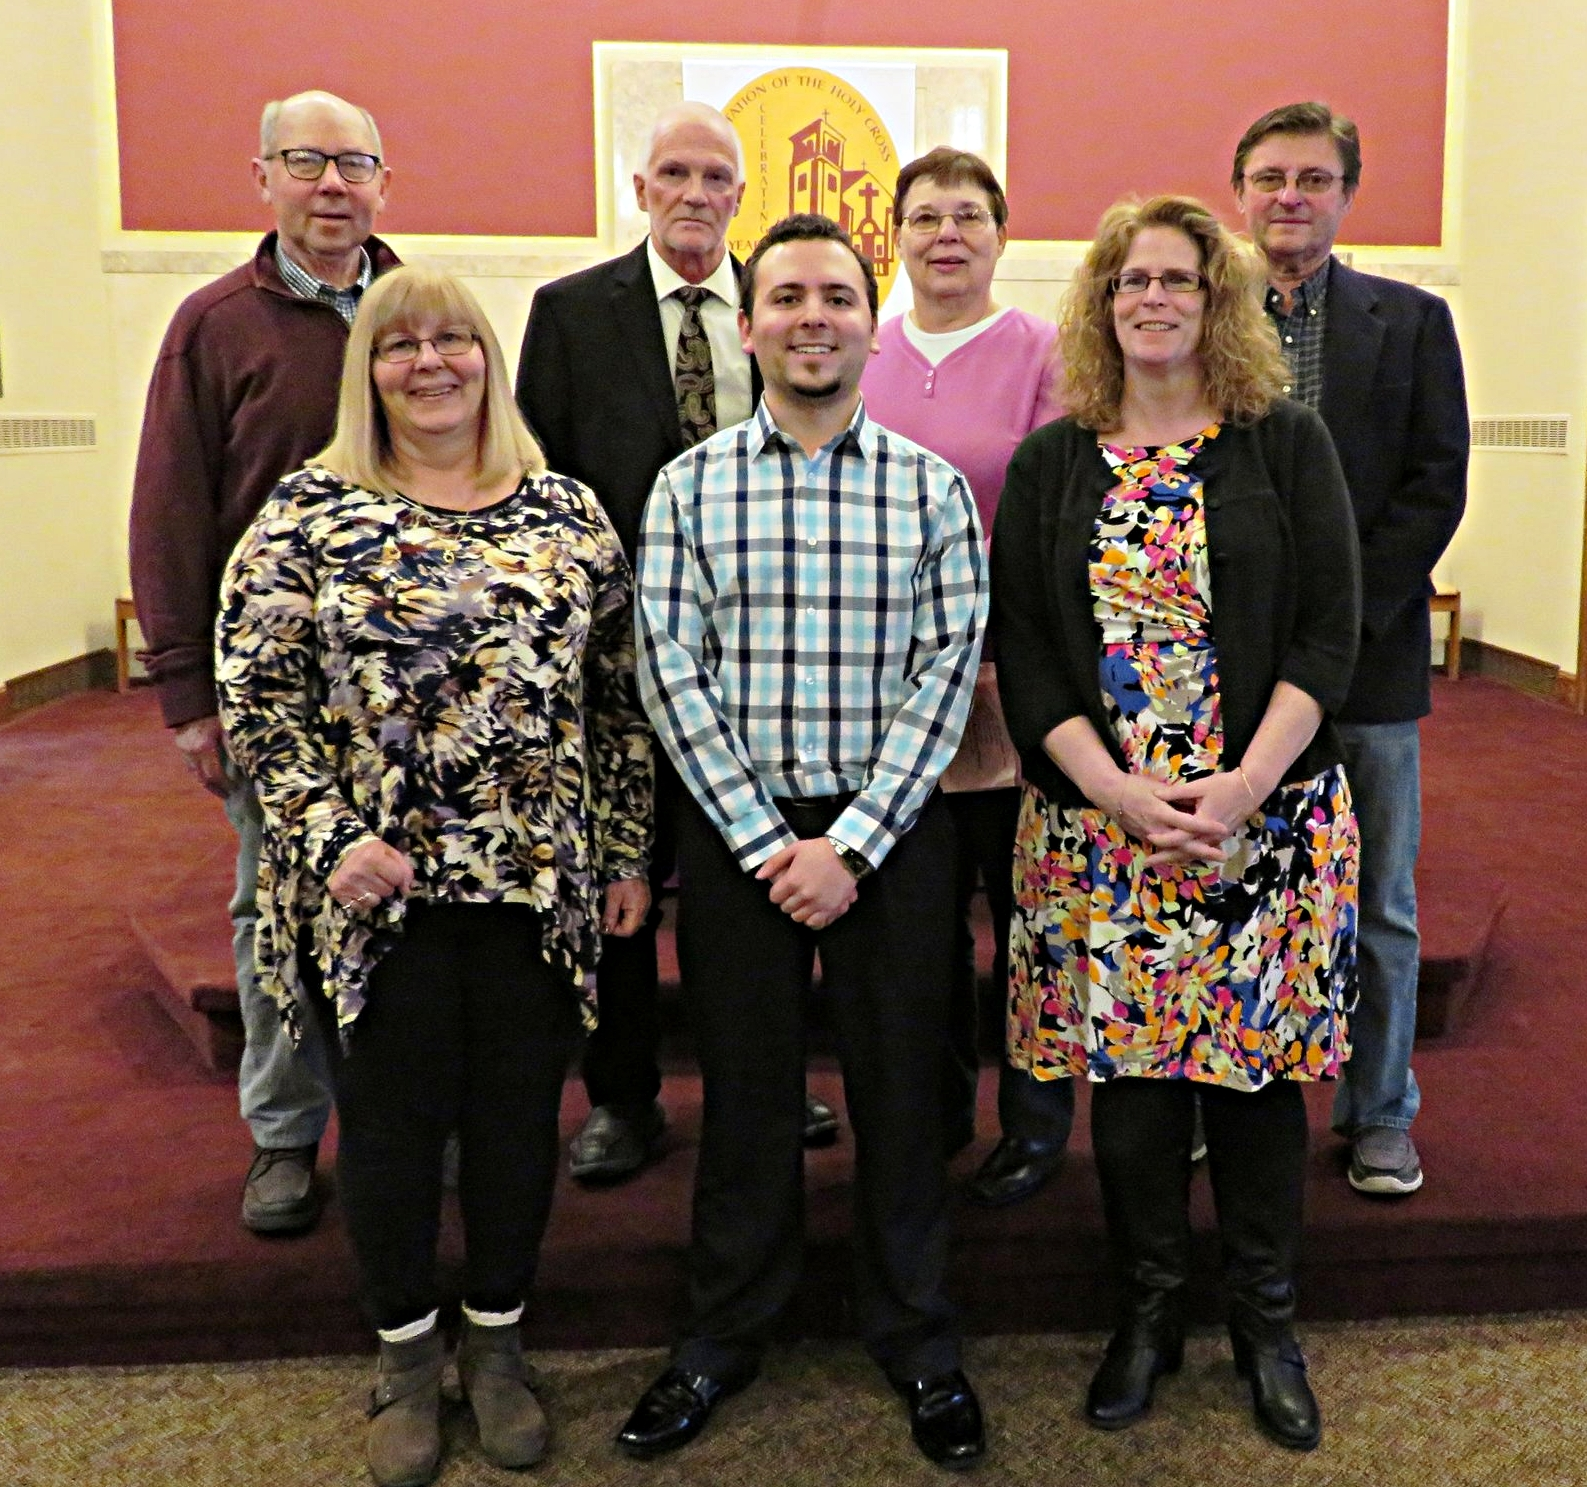 Pastoral Council - Pictured first row L-R: Joan Cunard, Dominick Costantino Jr., and Diane Fitzgibbon.            Second row L-R: Frank Phillips, Barry Kaminski, Ann Williams, and Frank Sokola.Missing from photo: Susan PointekThe members of this council are appointed by the Pastor. They work on goals and visioning for the future and focus on the areas of WORD, WORSHIP, COMMUNITY, and SERVICE.